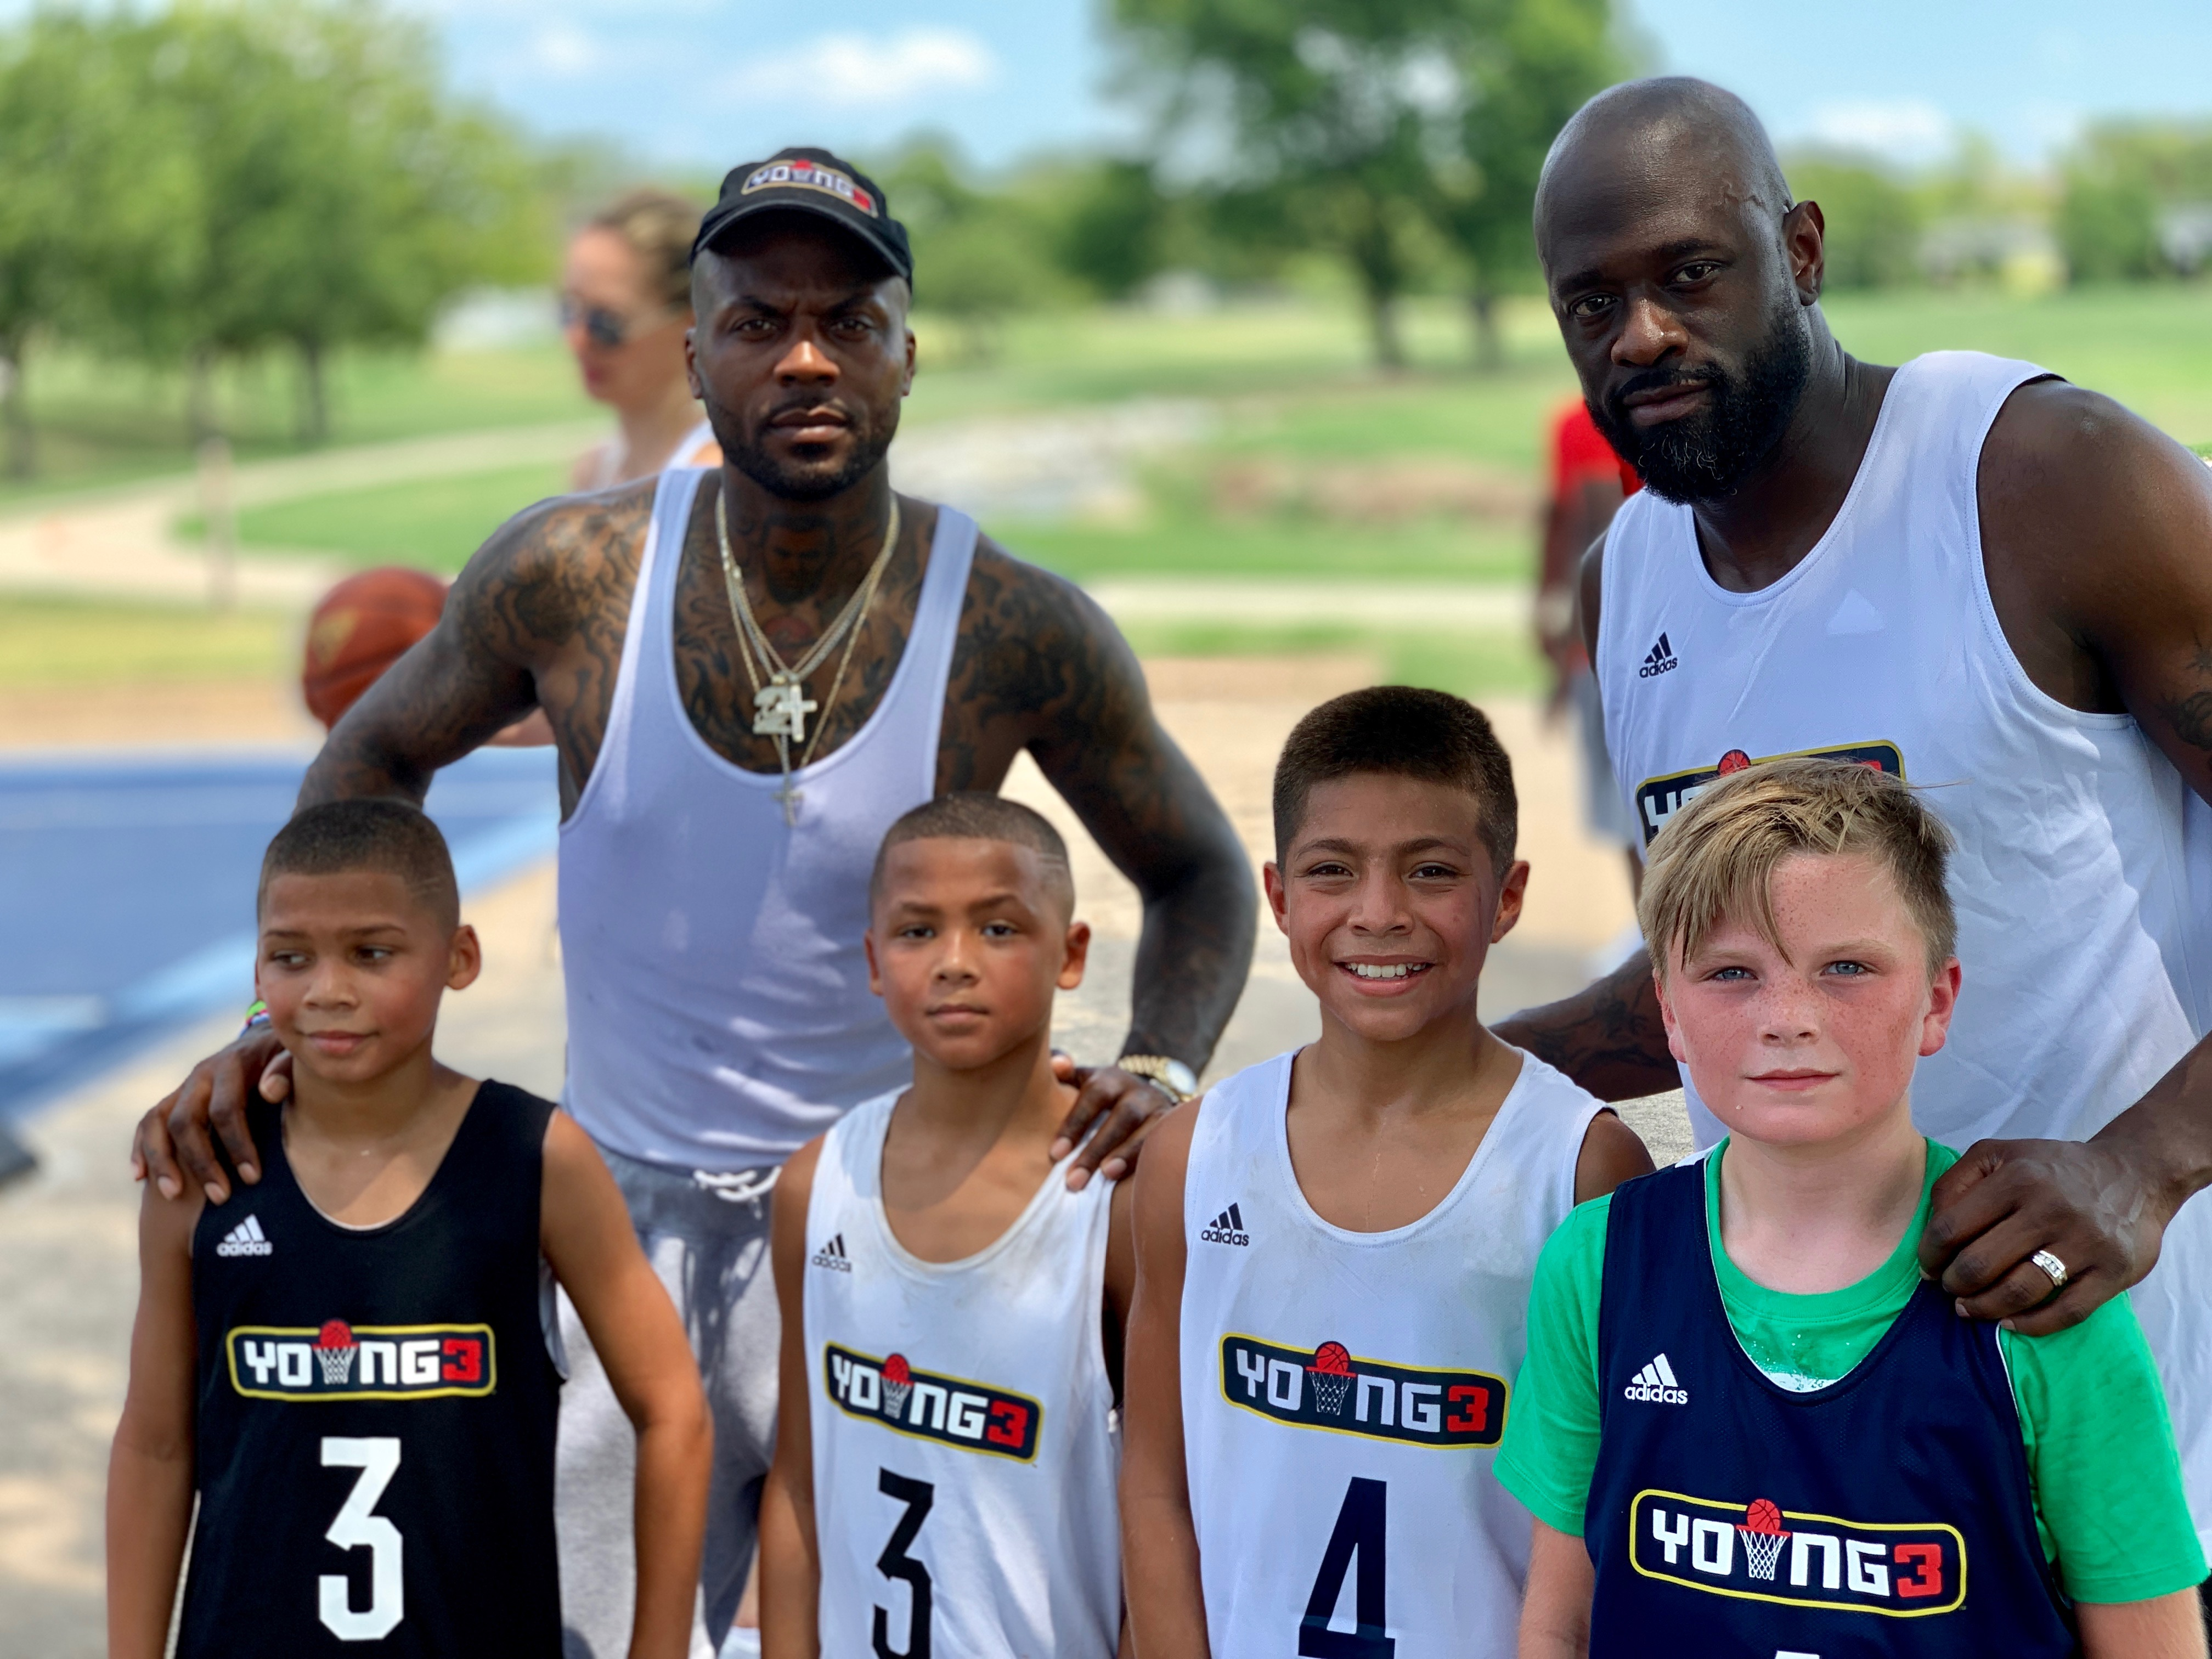 DeShawn Stevenson Gives Back To The Dallas Youth With A Shooting For Peace Clinic